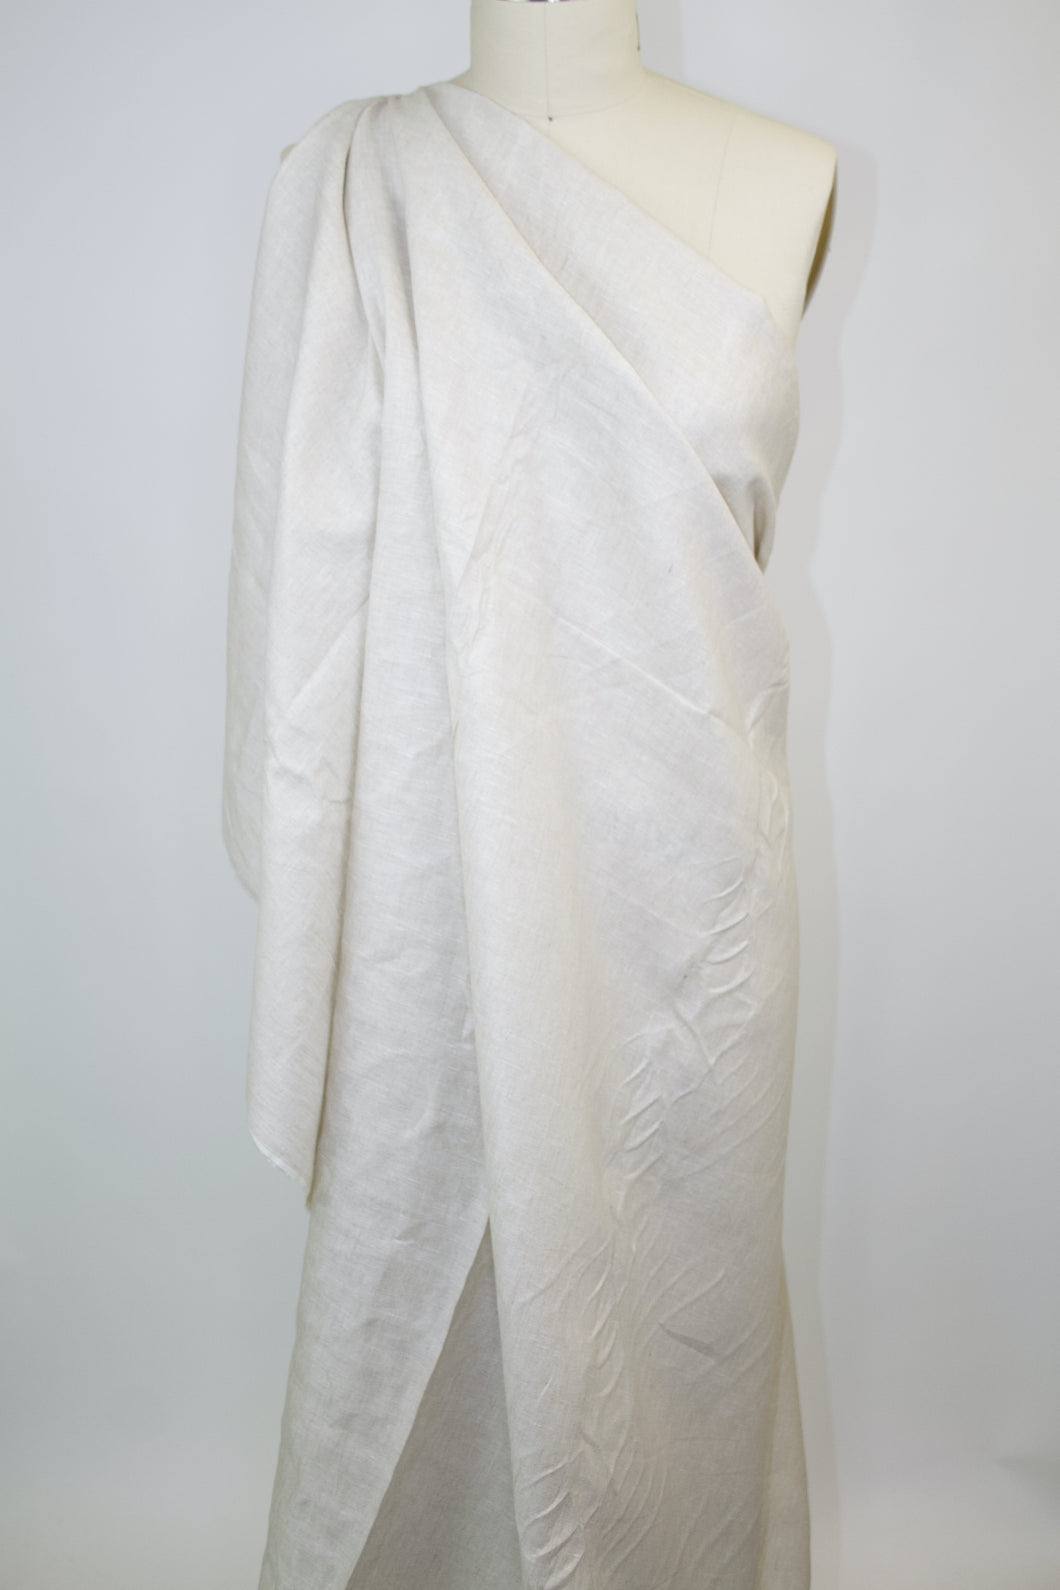 Italian Blouse Weight Linen - Natural